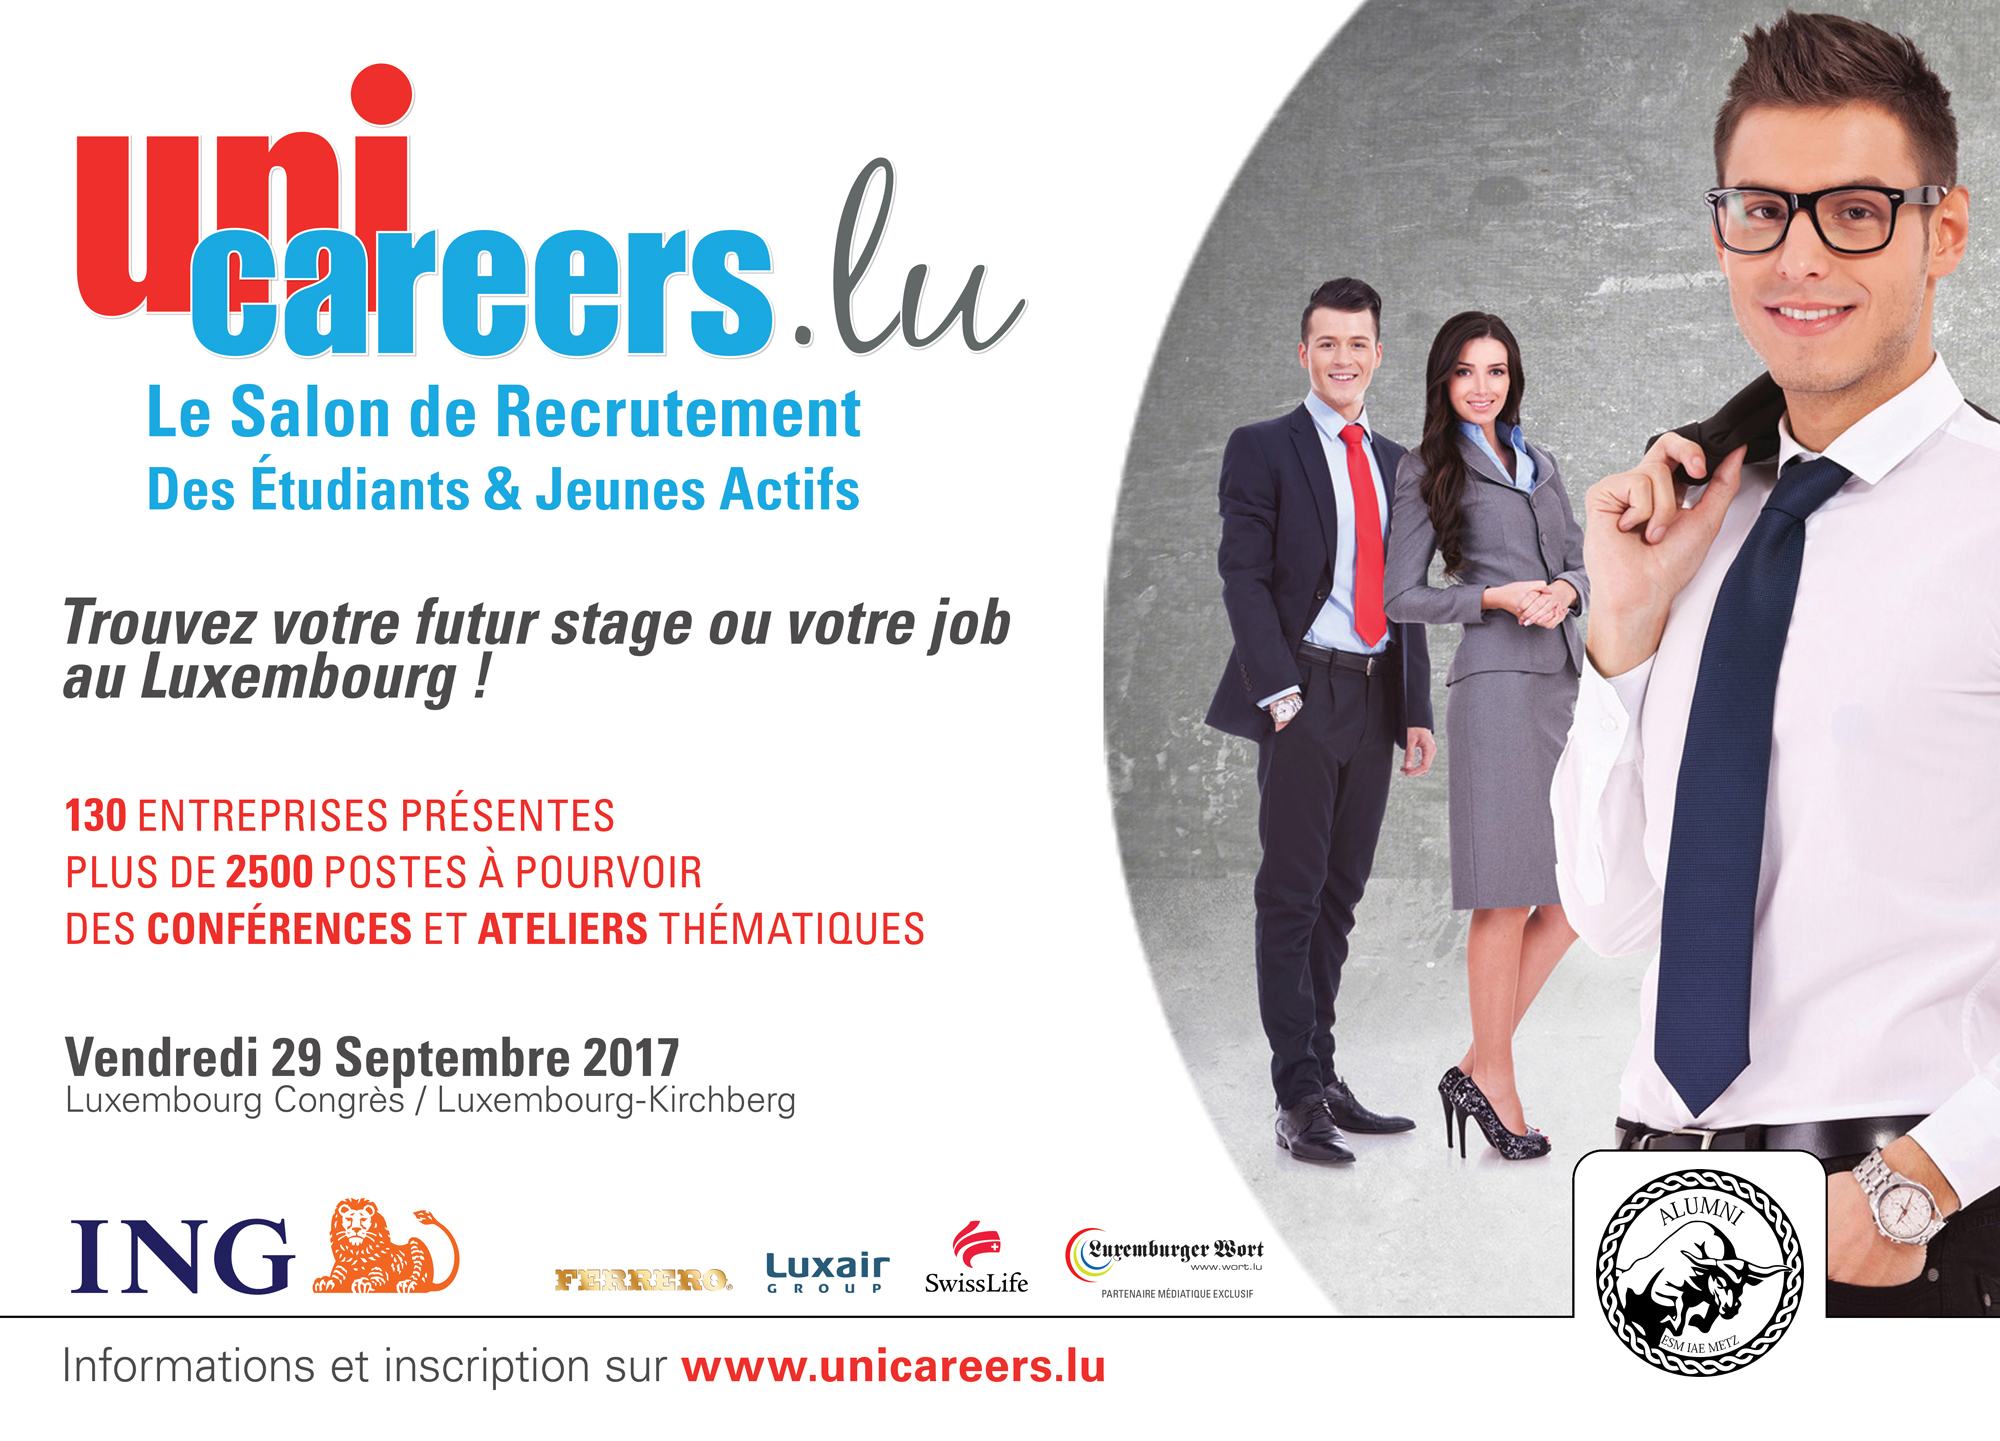 Le salon de recrutement luxembourgeois for Salon recrutement 2017